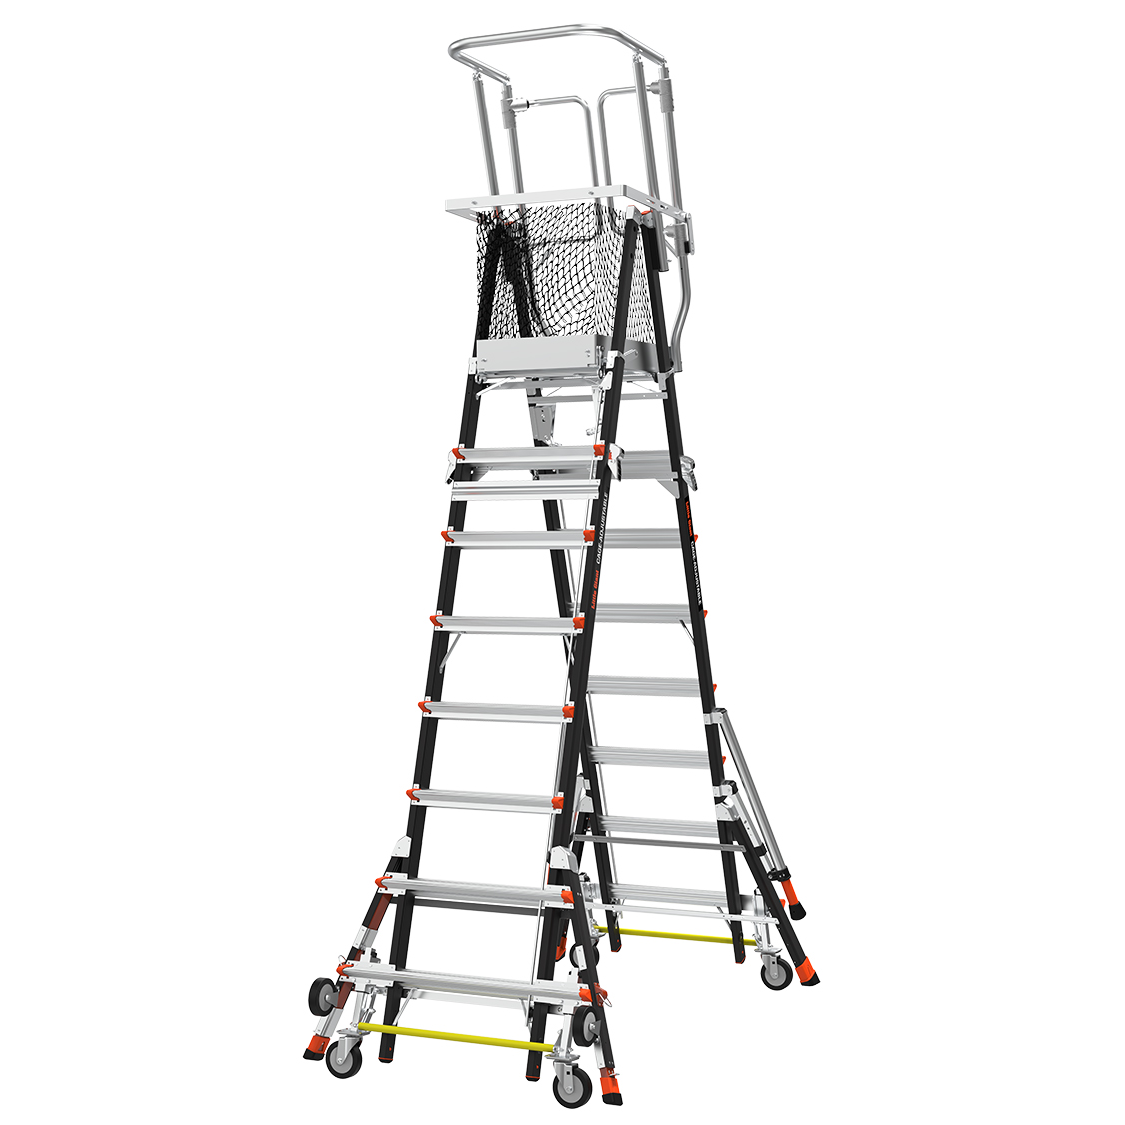 Adj. Safety Cage Model 8-14 Fiberglass Ladder, Ratchet Levelers, IAA